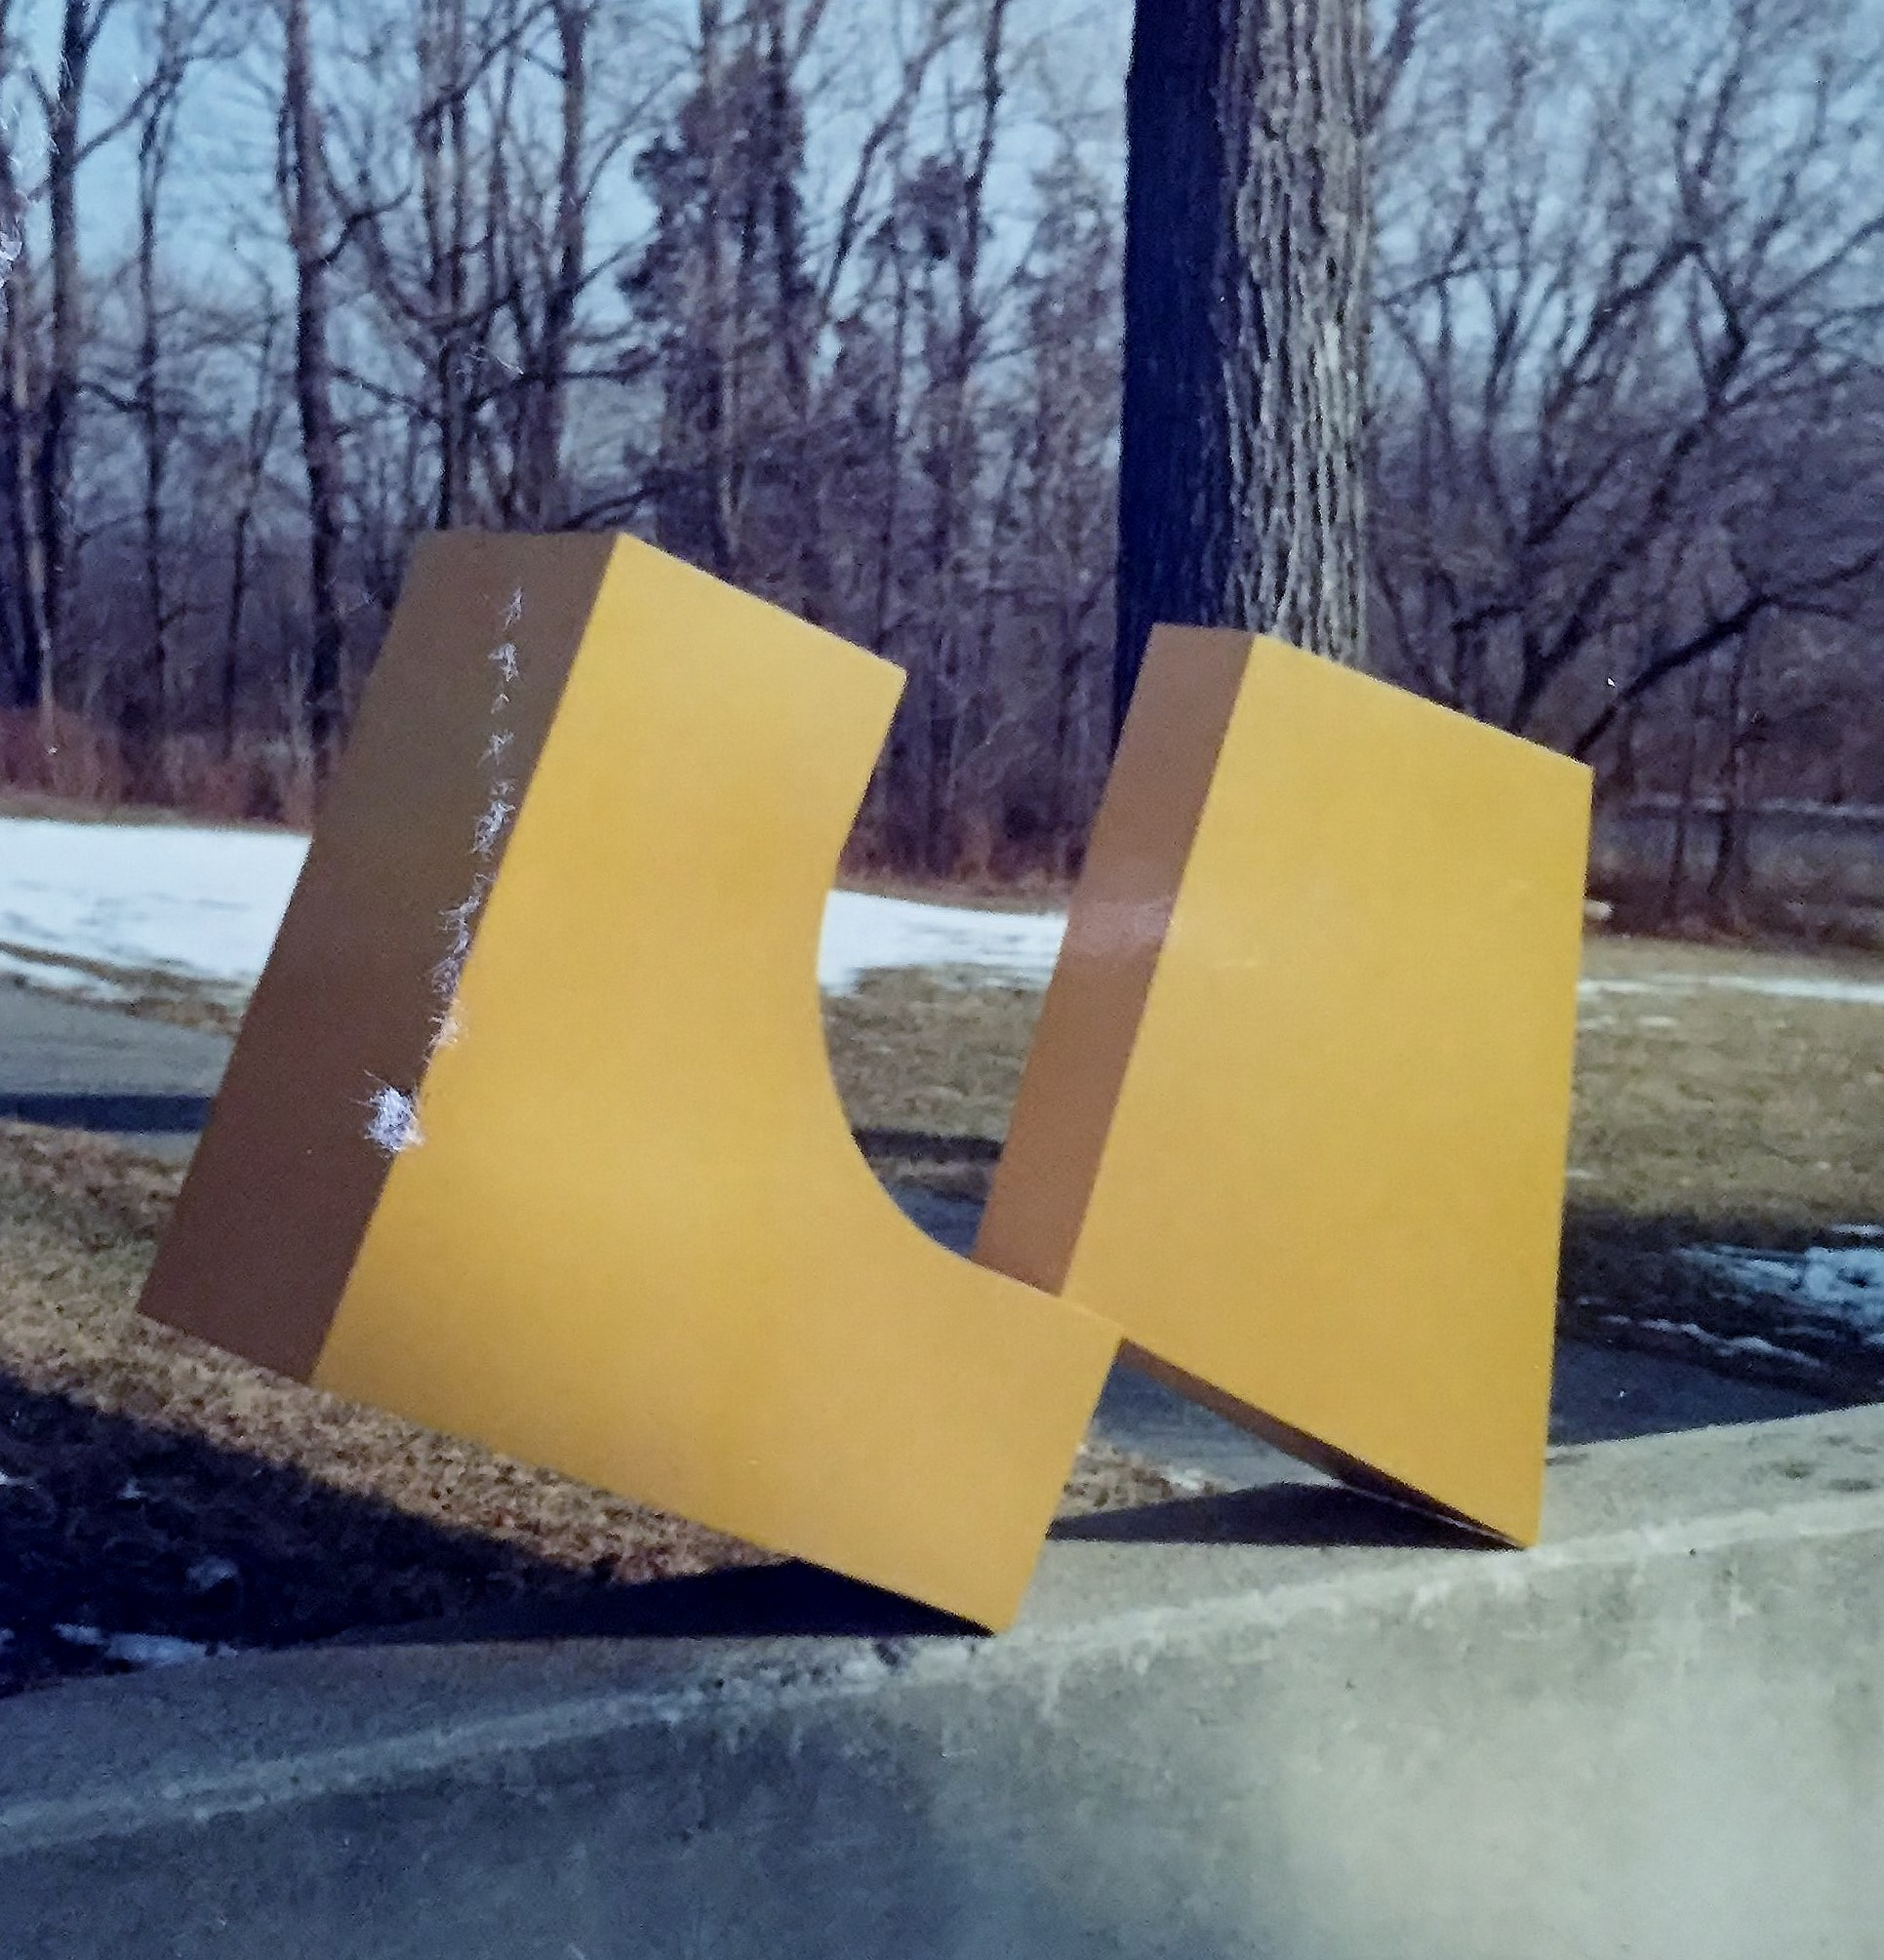 David Smalley Sculpture Trail: A joint venture of Connecticut College and the Lyman Allyn Art Museum